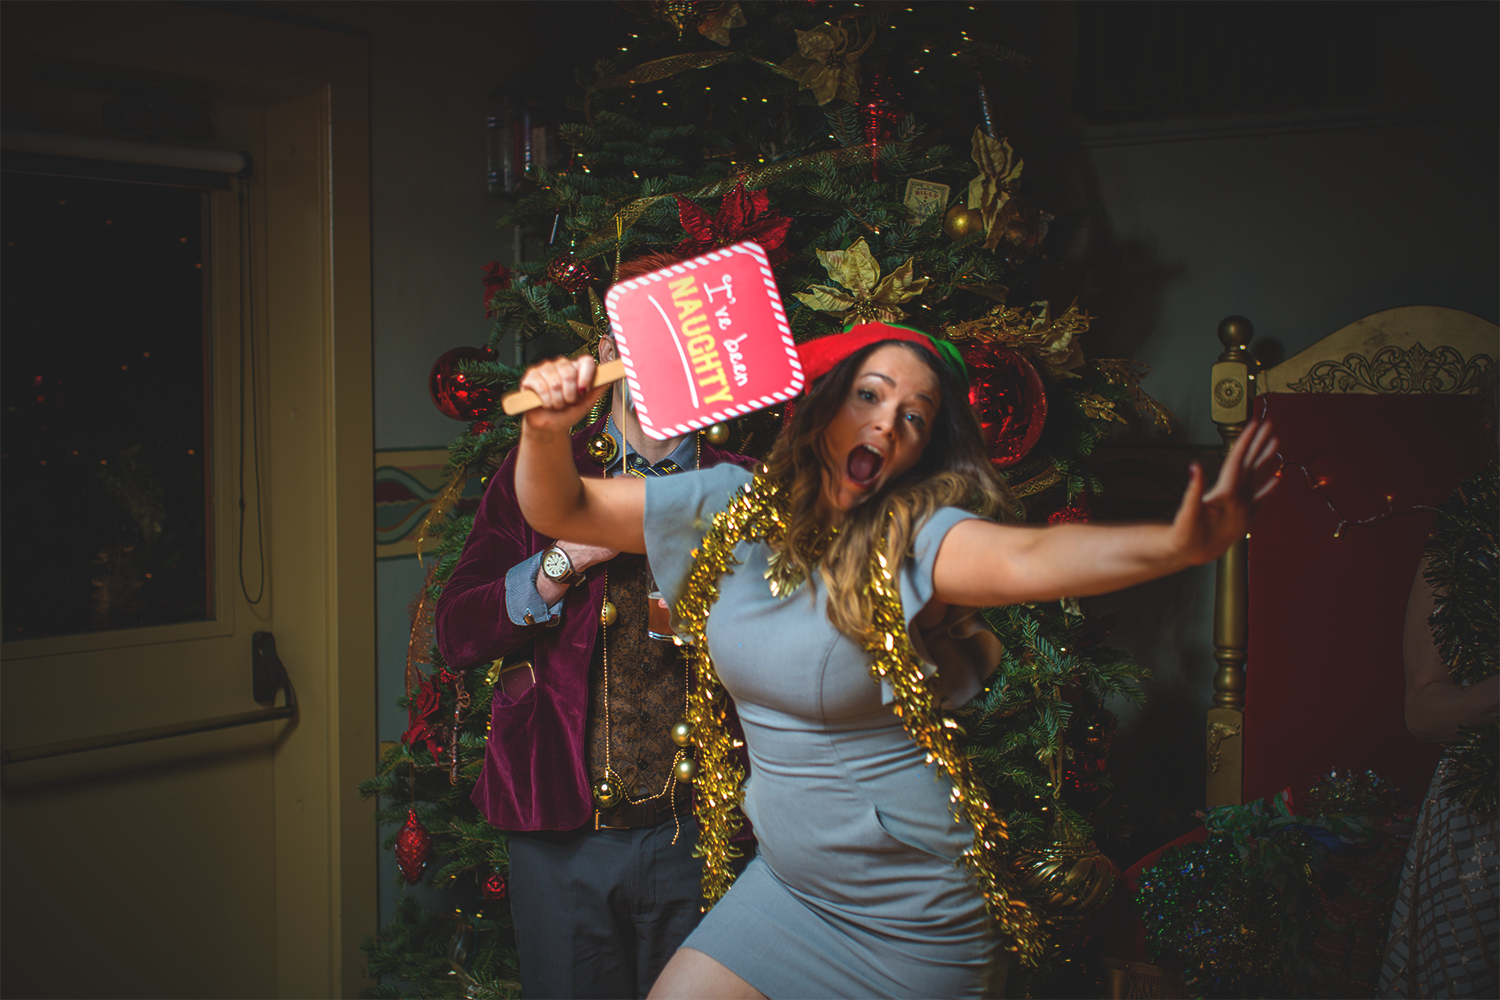 epproperties-vancouver-washington-xmas-party-photolga3.png